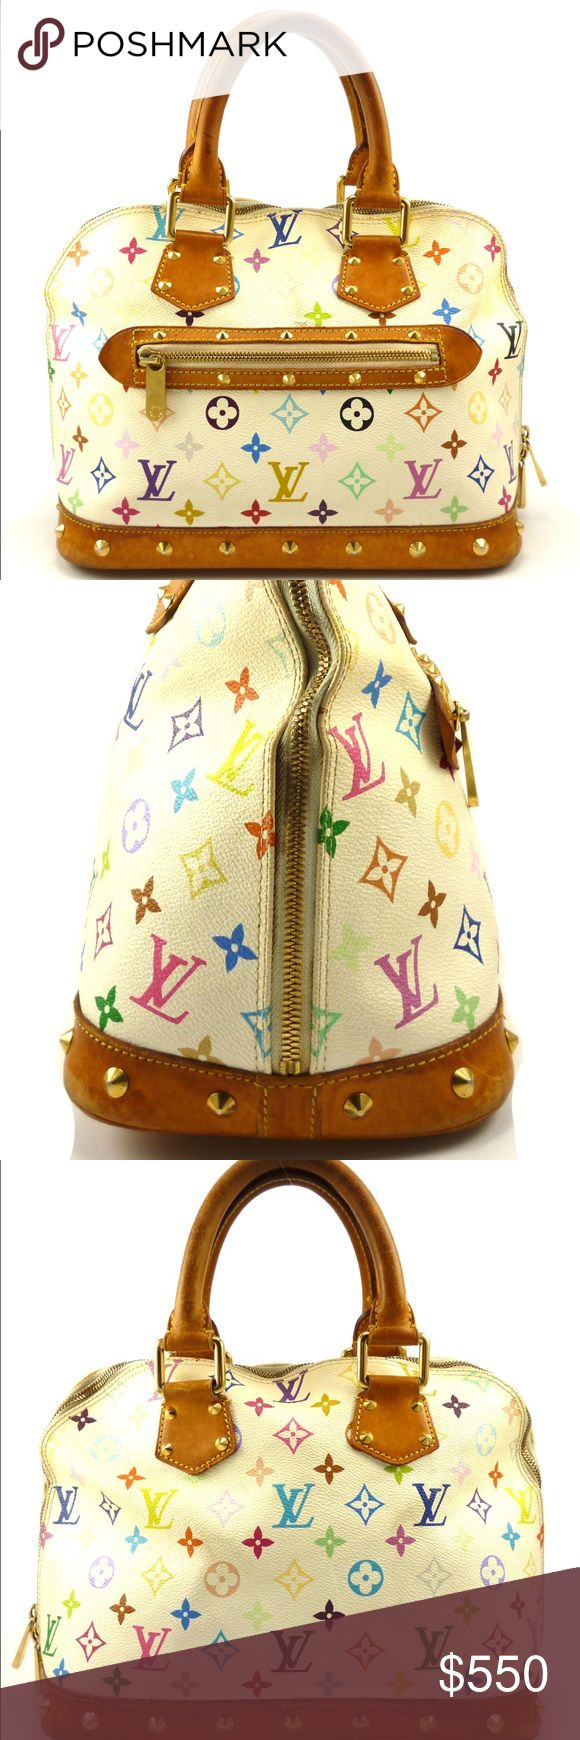 Louis Vuitton Auth Multicolore Alma MM Hand Bag From the Takashi Murakami collection. White and multicolored Monogram on coated canvas with brass hardware, vachetta leather accents, pyramid studs and an exterior zip pocket. In good pre-owned condition. Light wear to the canvas with some darkening on the leather handles. The interior is very clean. Guaranteed authentic. Date Code: FL0014 (France 2004) Sorry no trades at this time. Please feel free to ask any questions. 103311 Louis Vuitton…